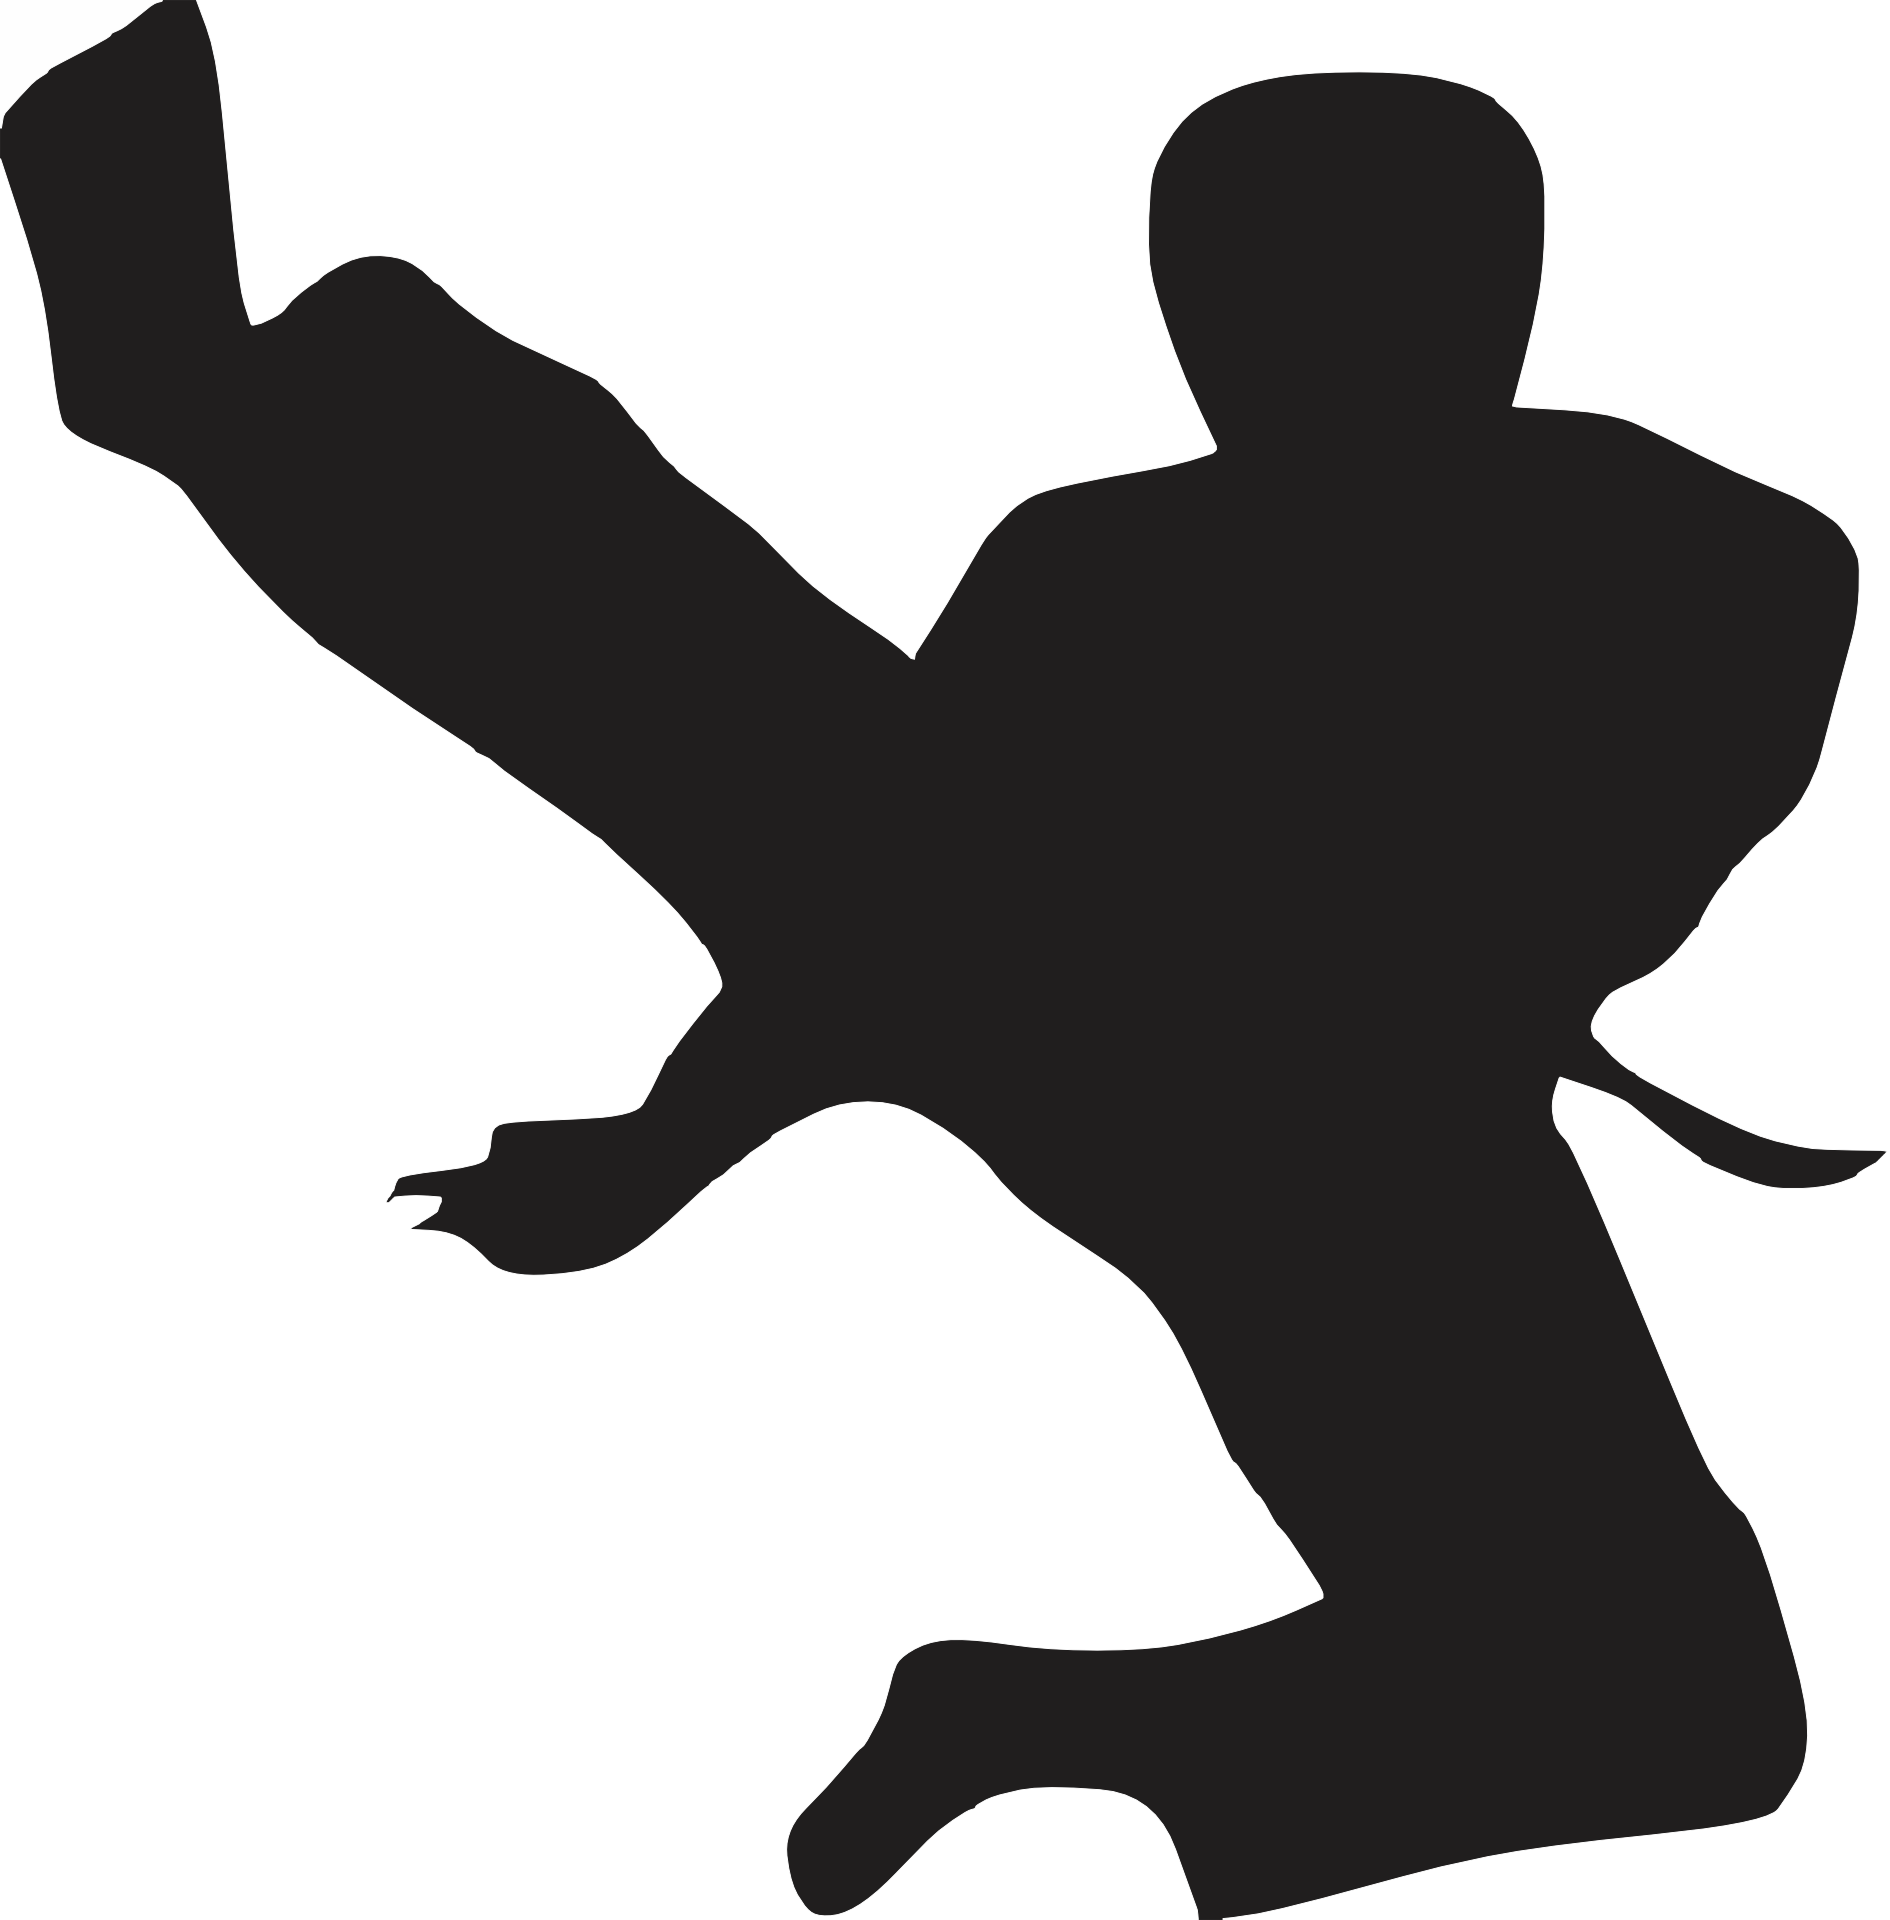 karate tae kwon do kung fu for anxiety